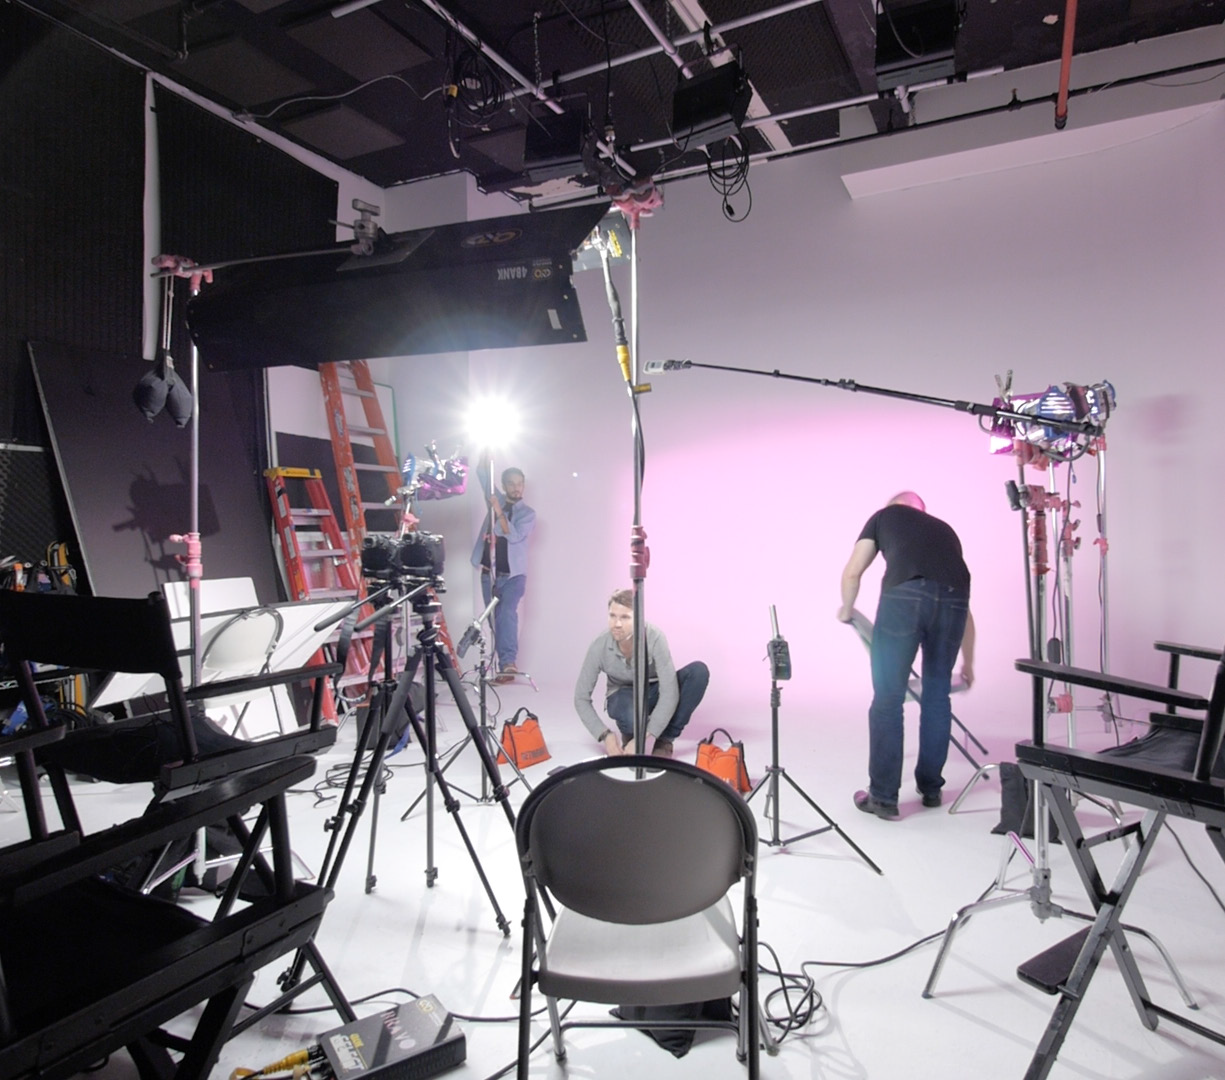 Video Production Company Near Stamford, CT - Top Notch Cinema - About-us